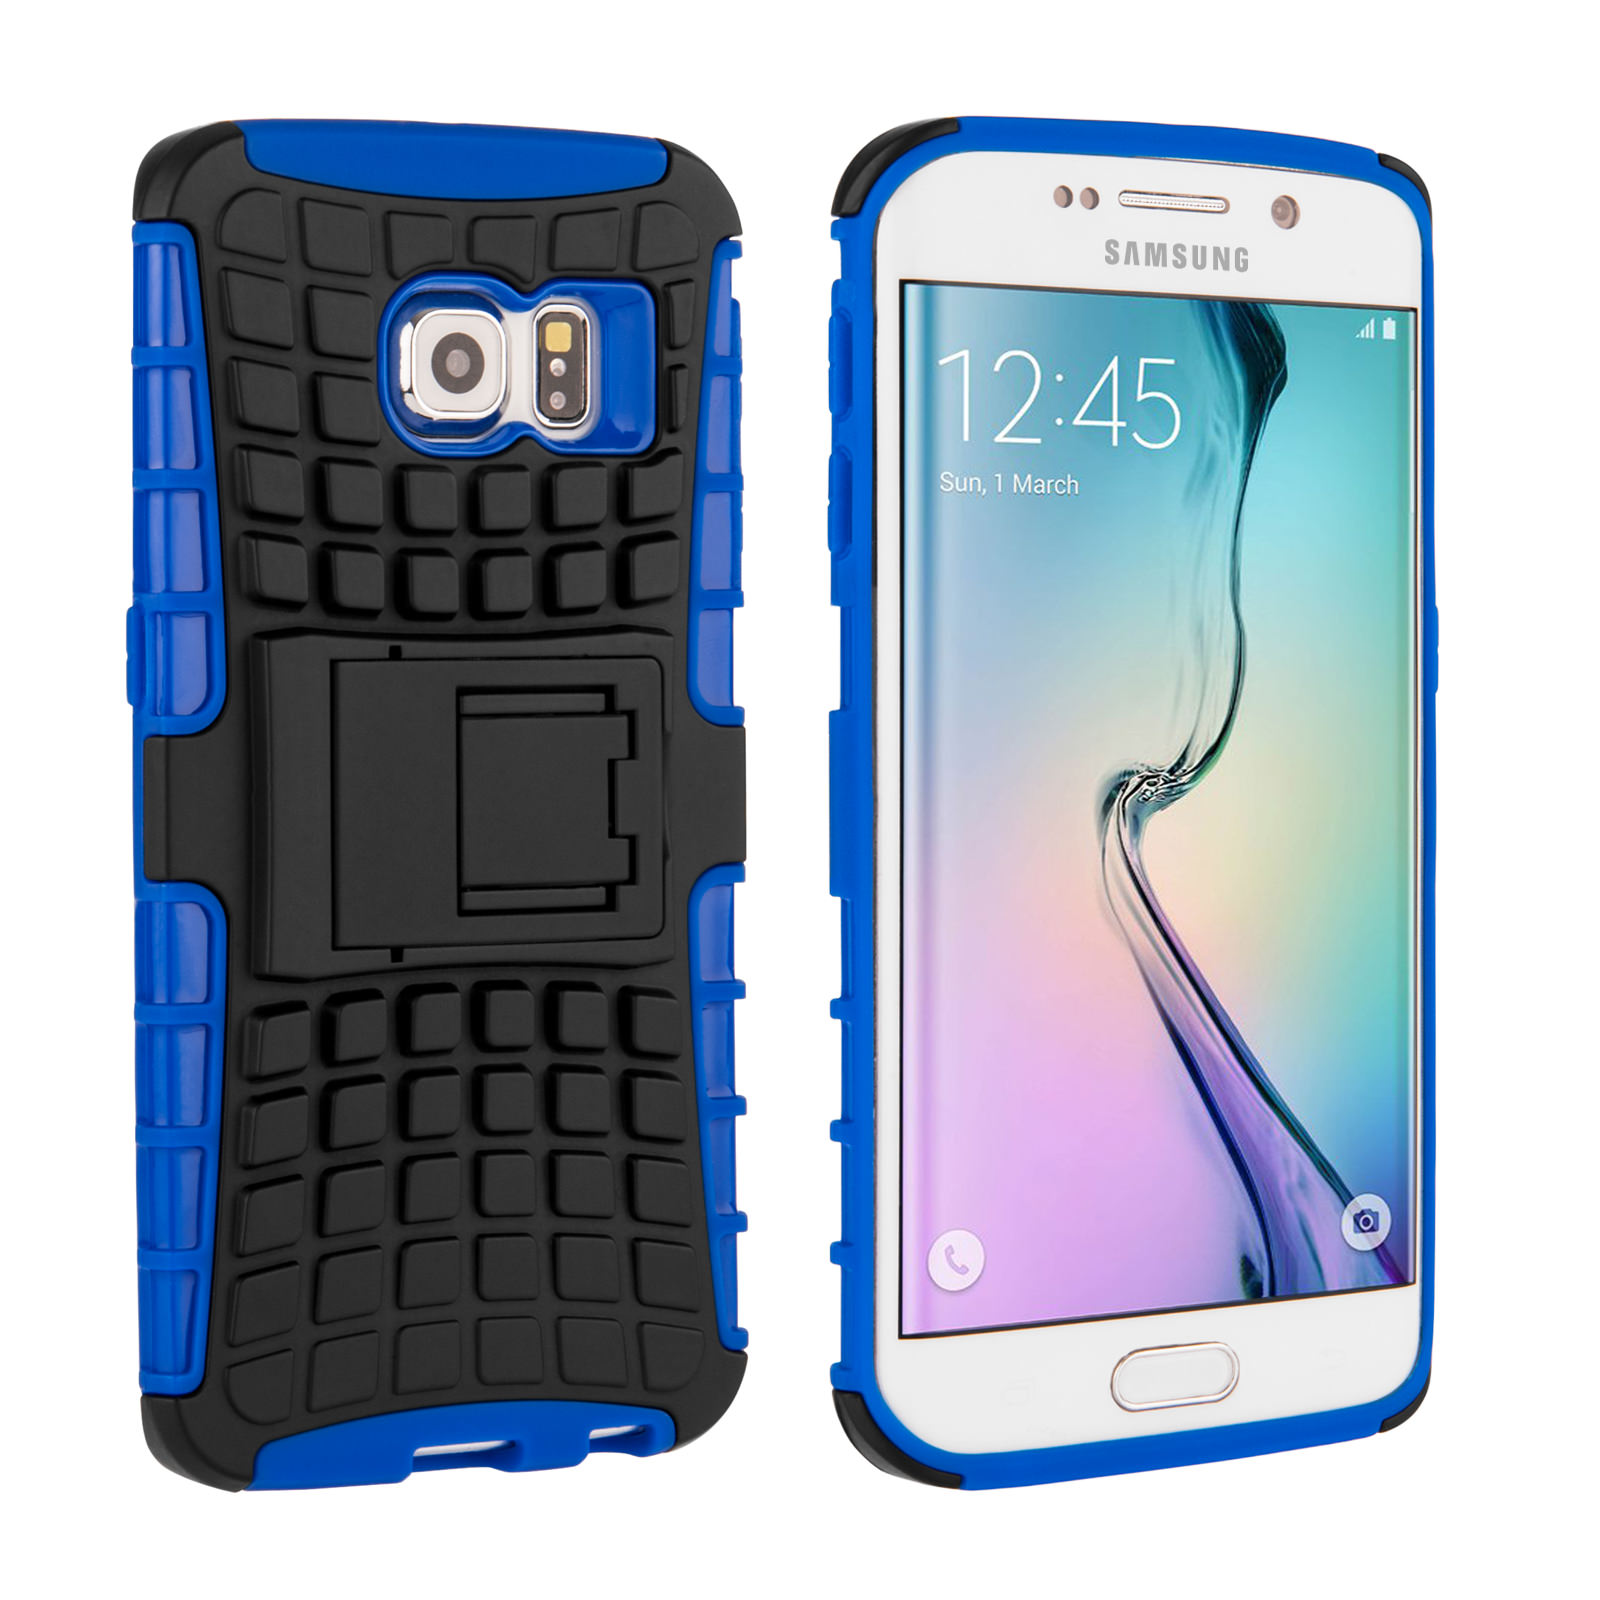 Yousave Accessories Samsung Galaxy S6 Edge Stand Combo Case - Blue / Black